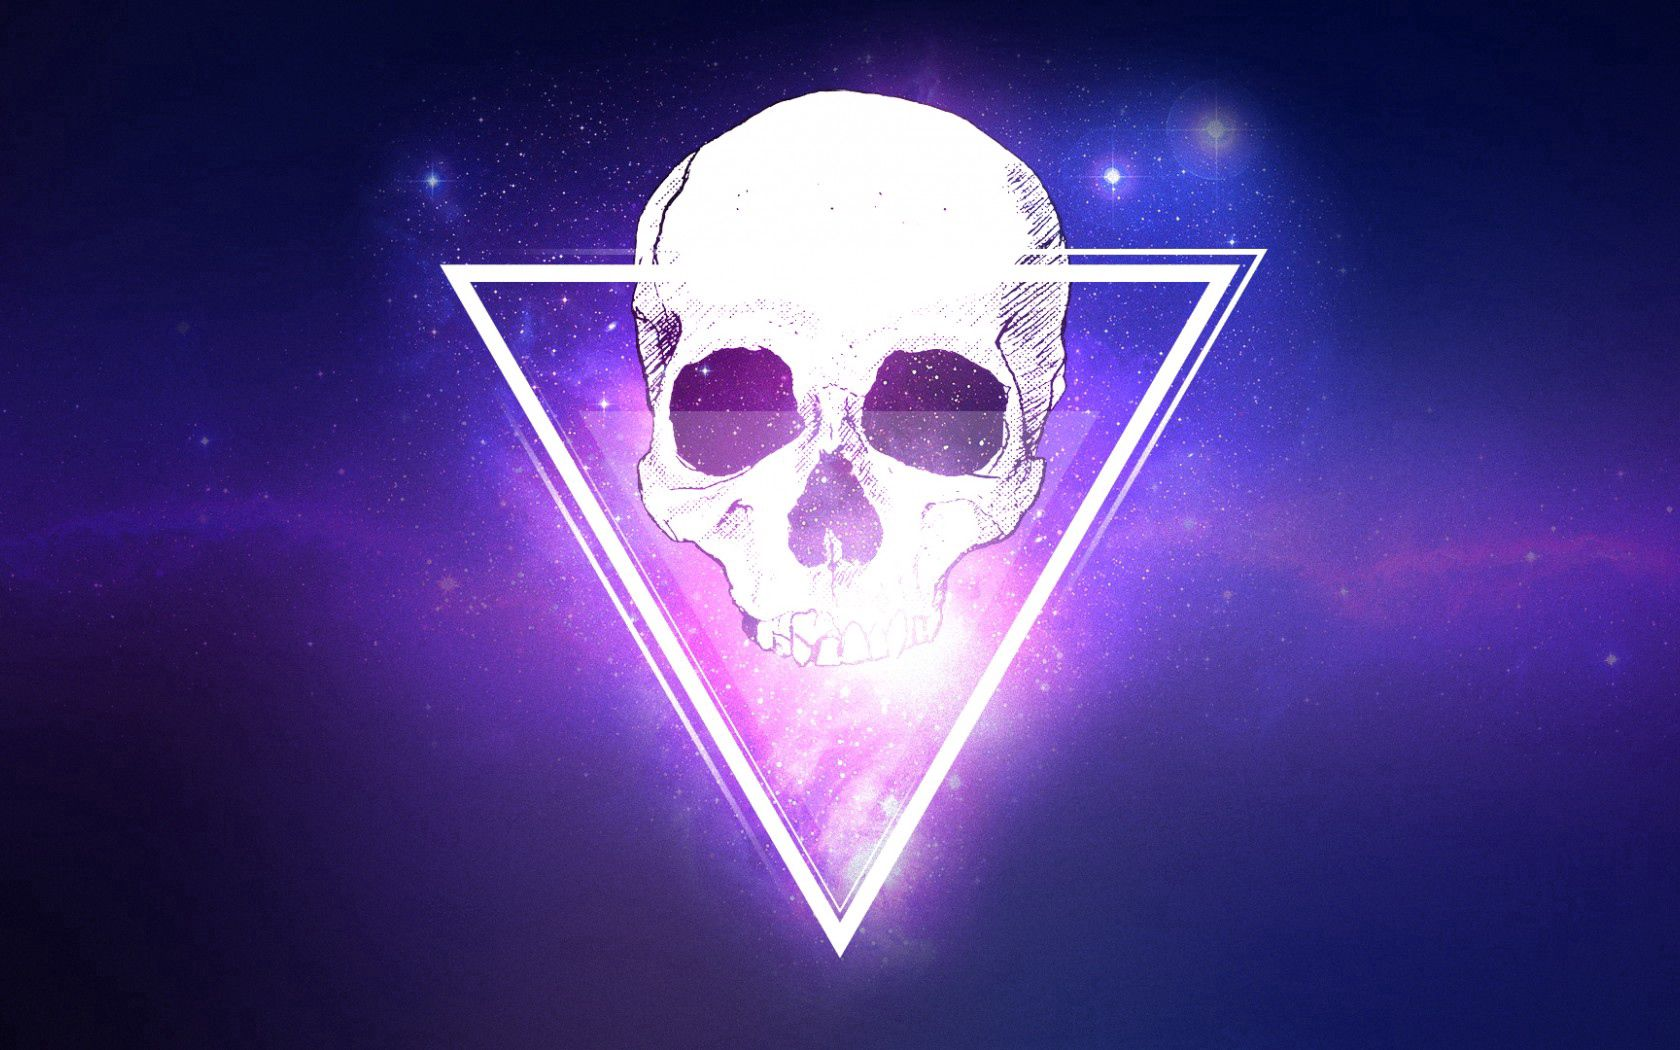 105109 download wallpaper Art, Universe, Skull, Triangle screensavers and pictures for free